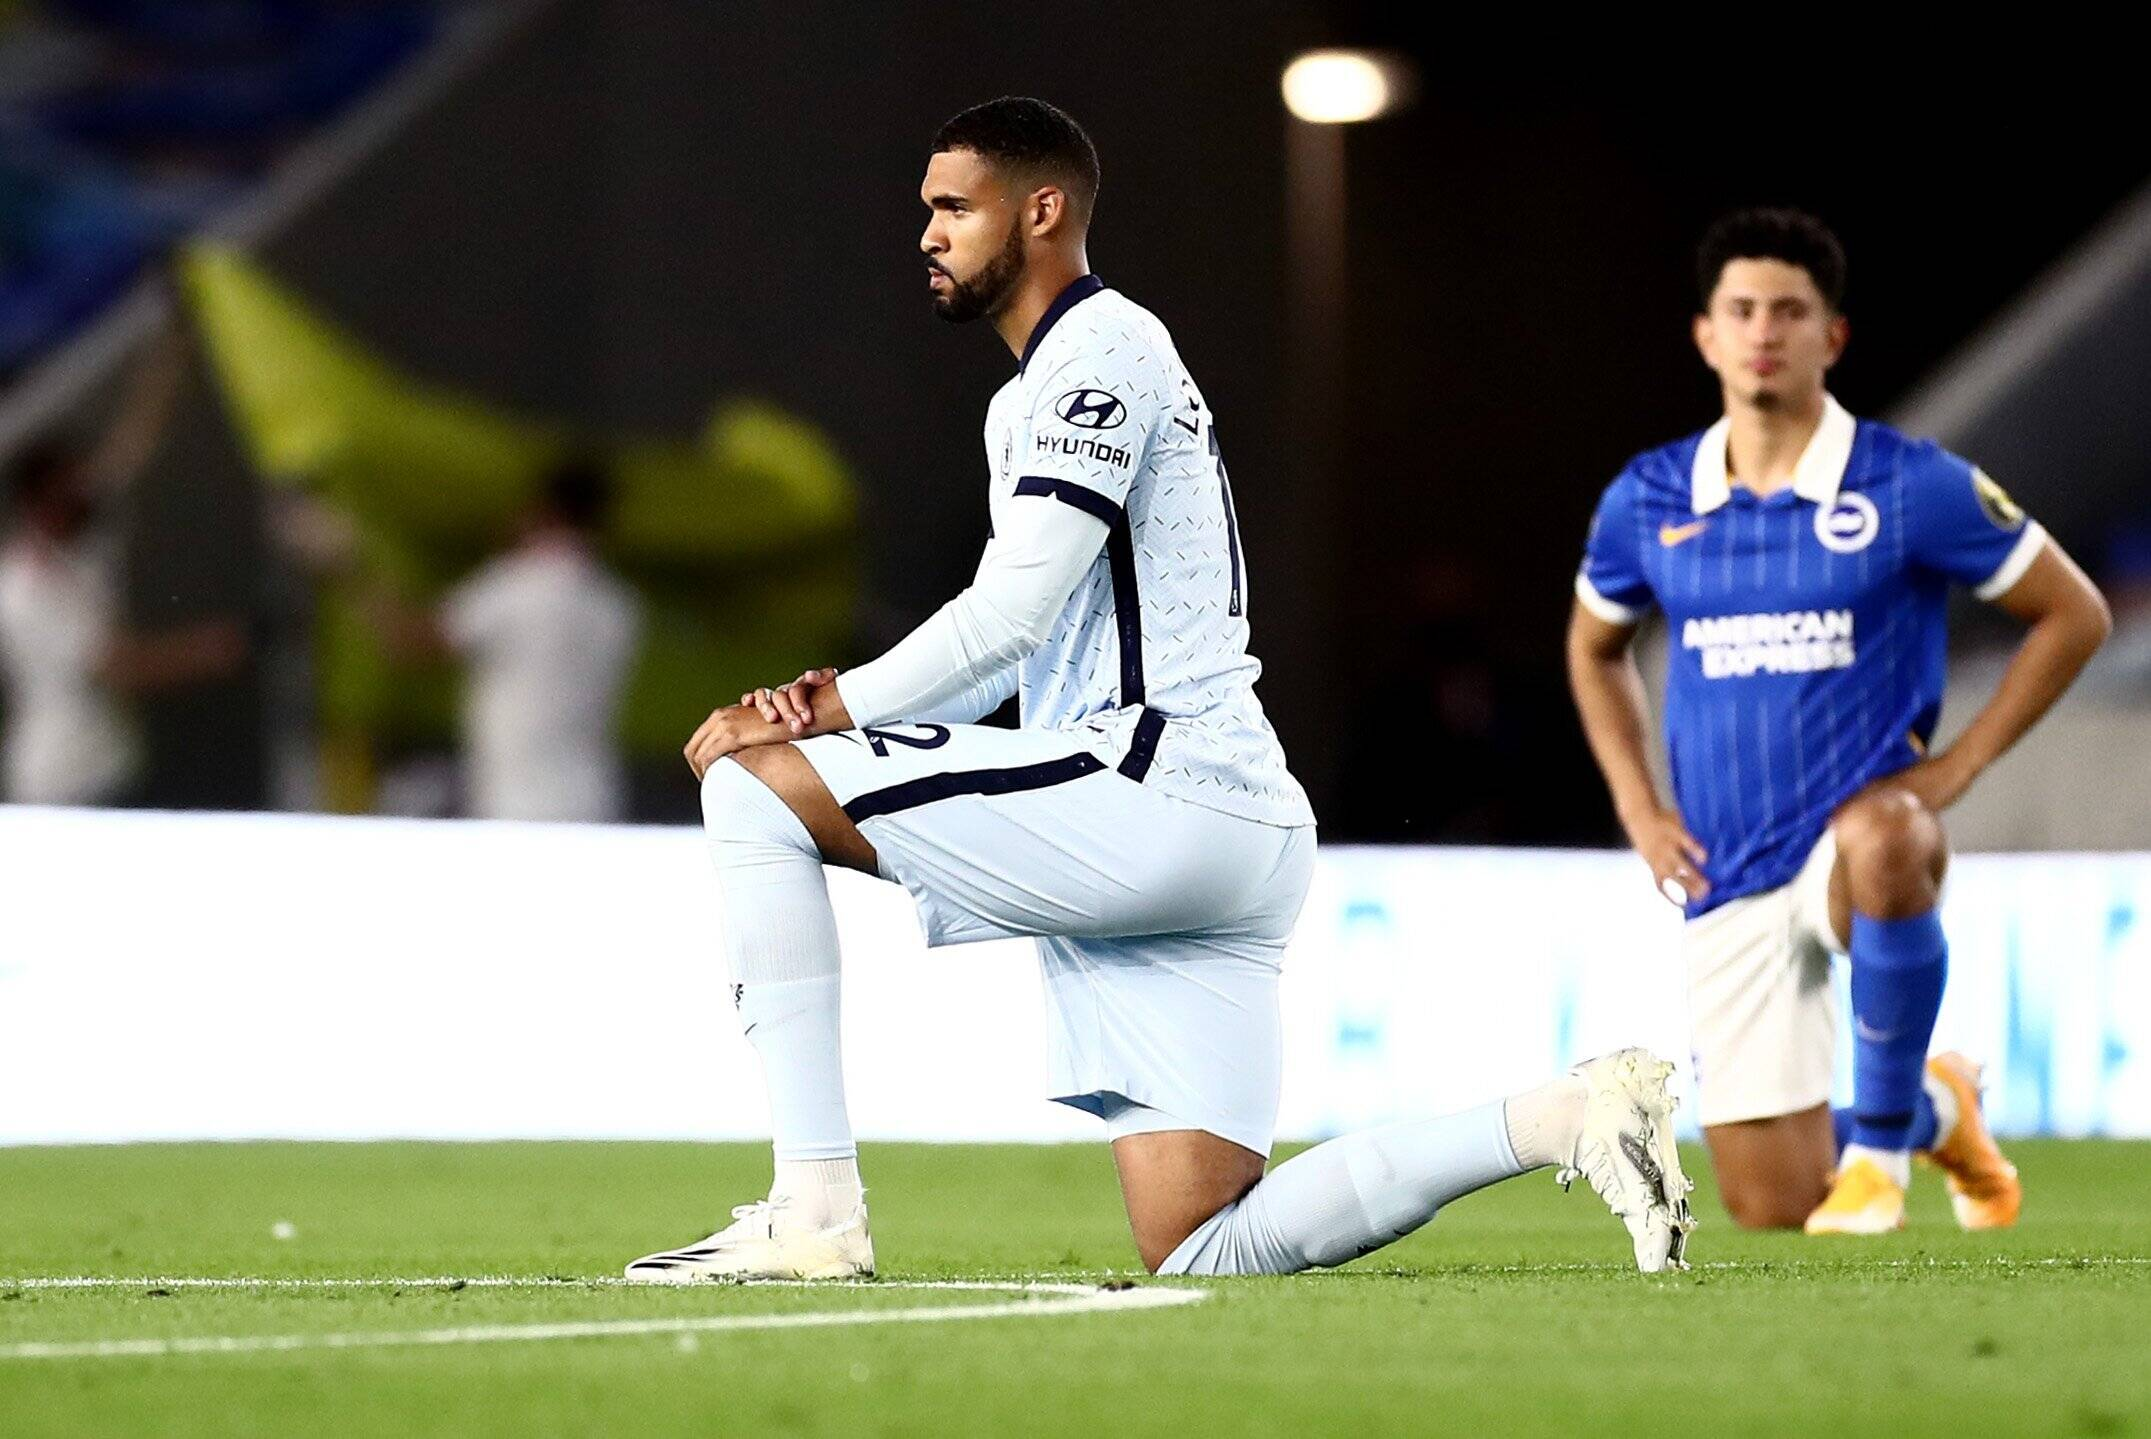 Chelsea playmaker Loftus-Cheek set for another loan spell (Loftus-Cheek is seen in the picture)